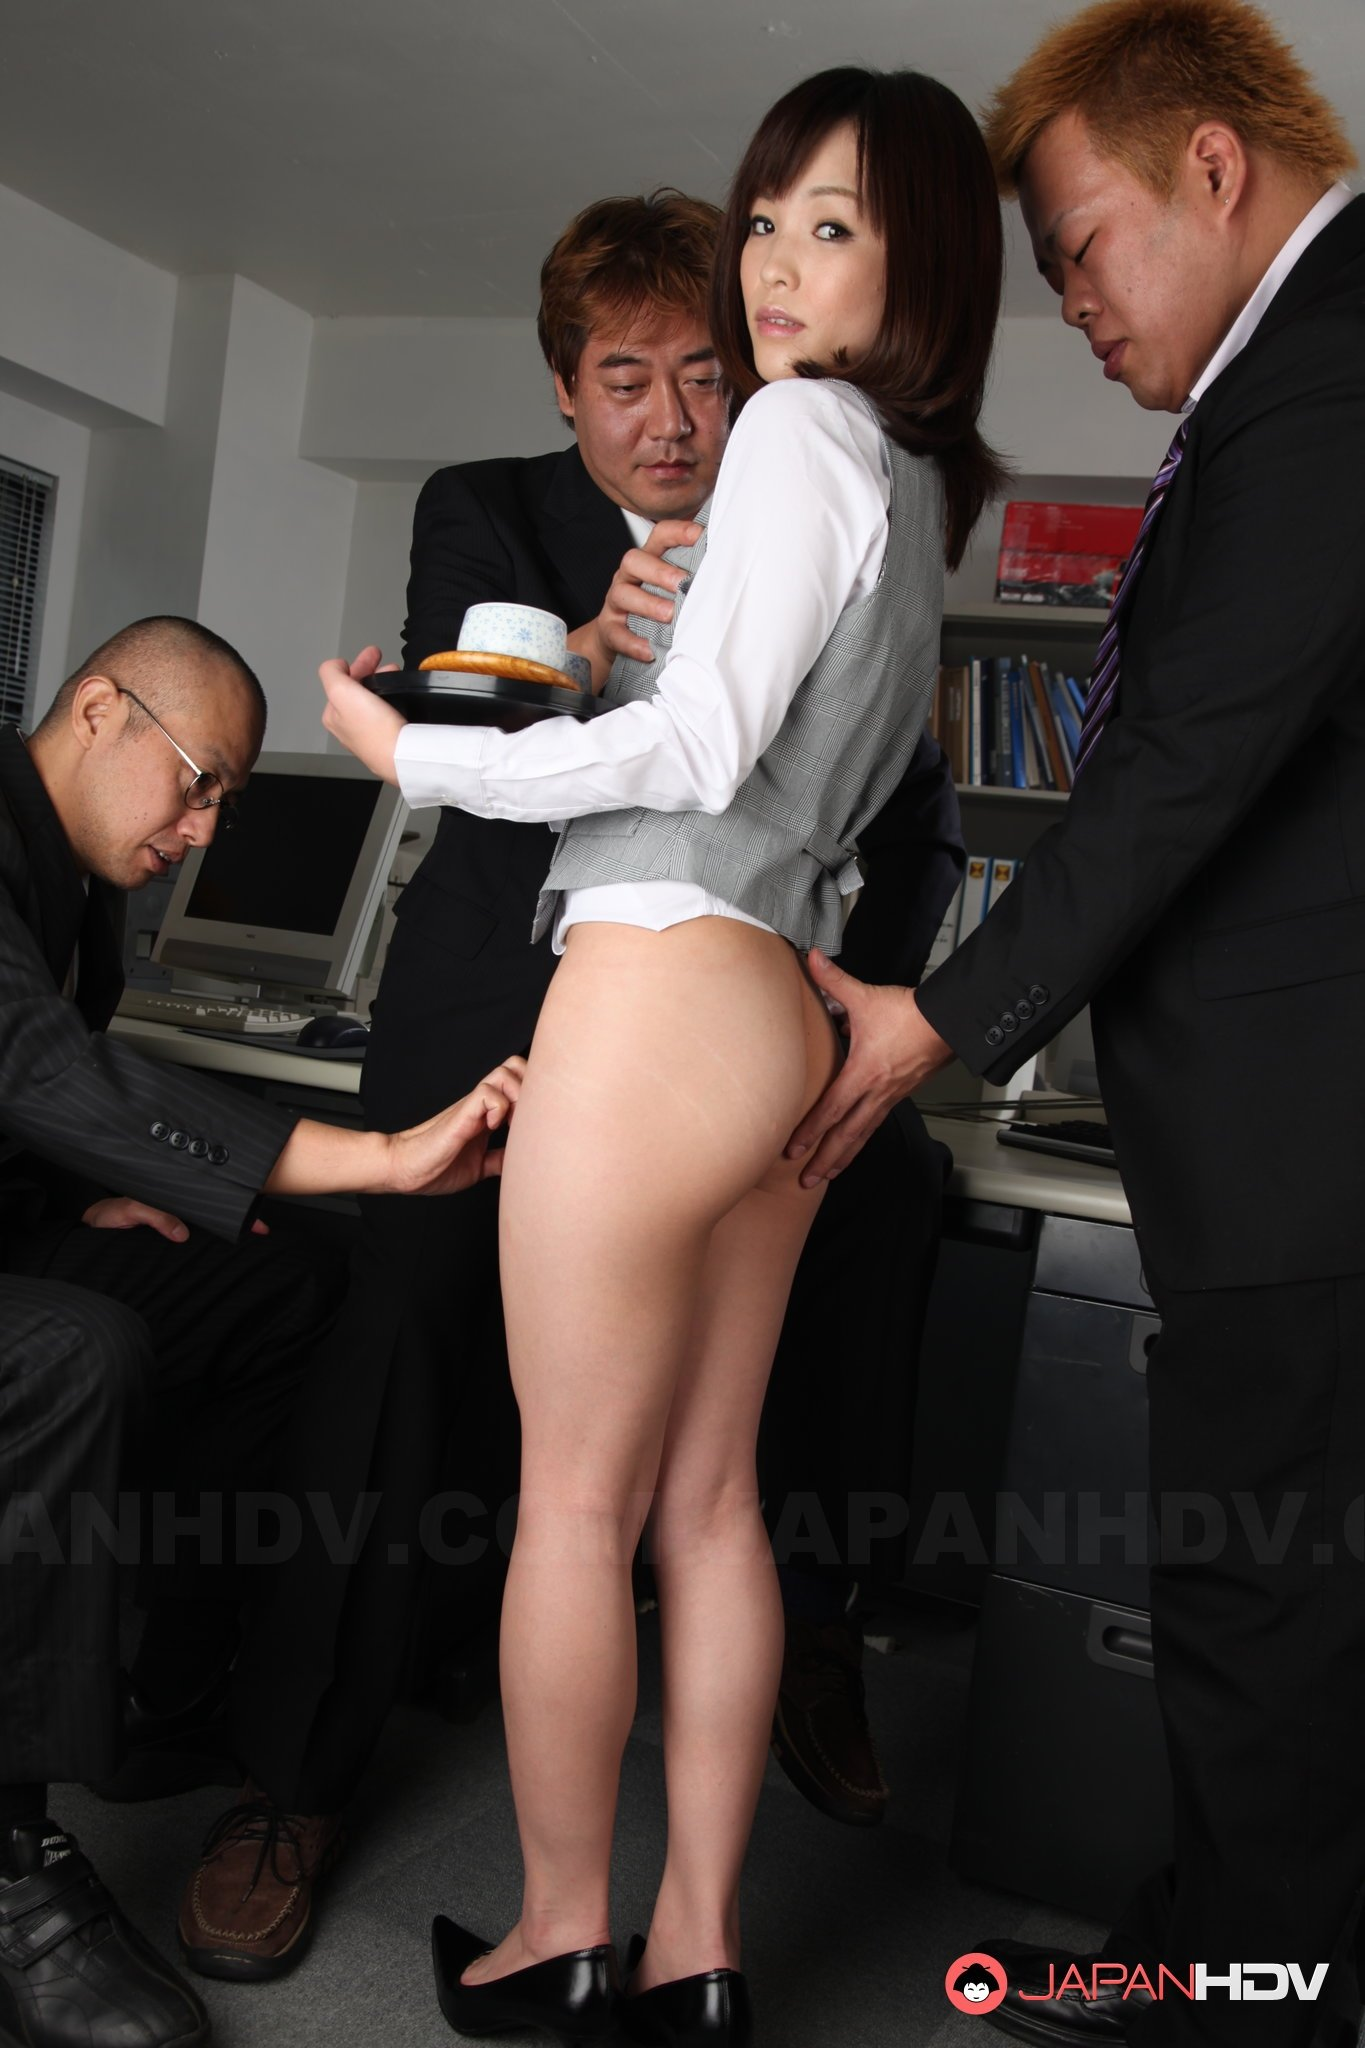 Arobin foking Wife frat Office real homemade All pron